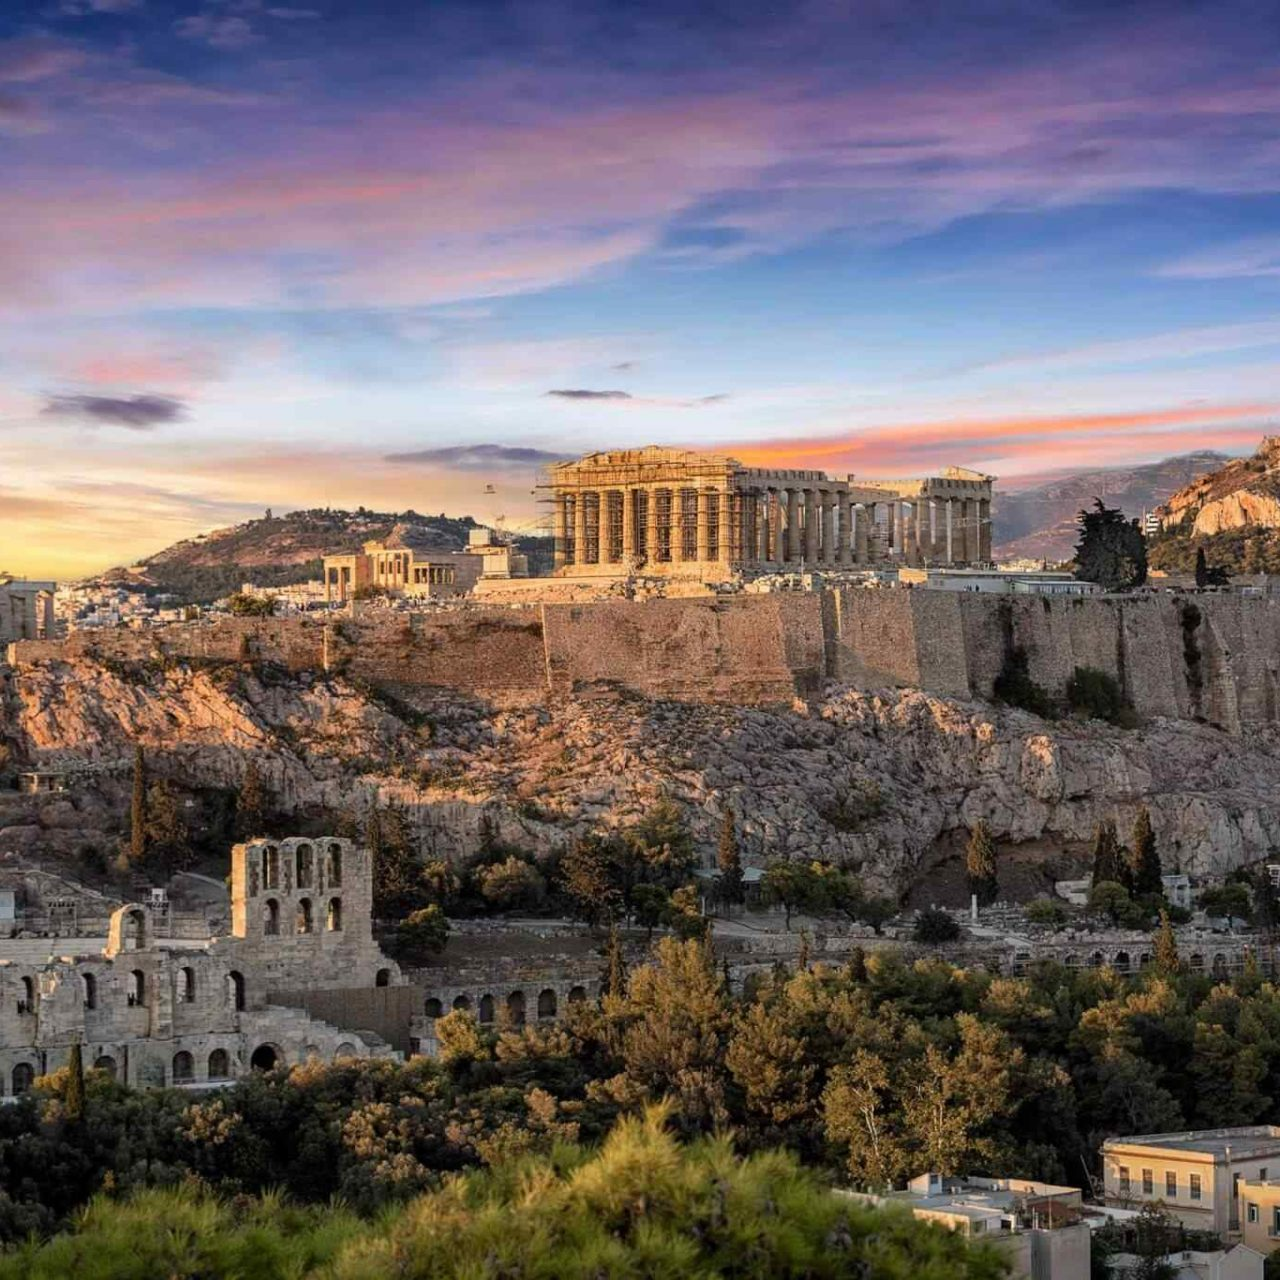 https://hotelslooks.com/wp-content/uploads/2018/09/destination-athens-01-1280x1280.jpg